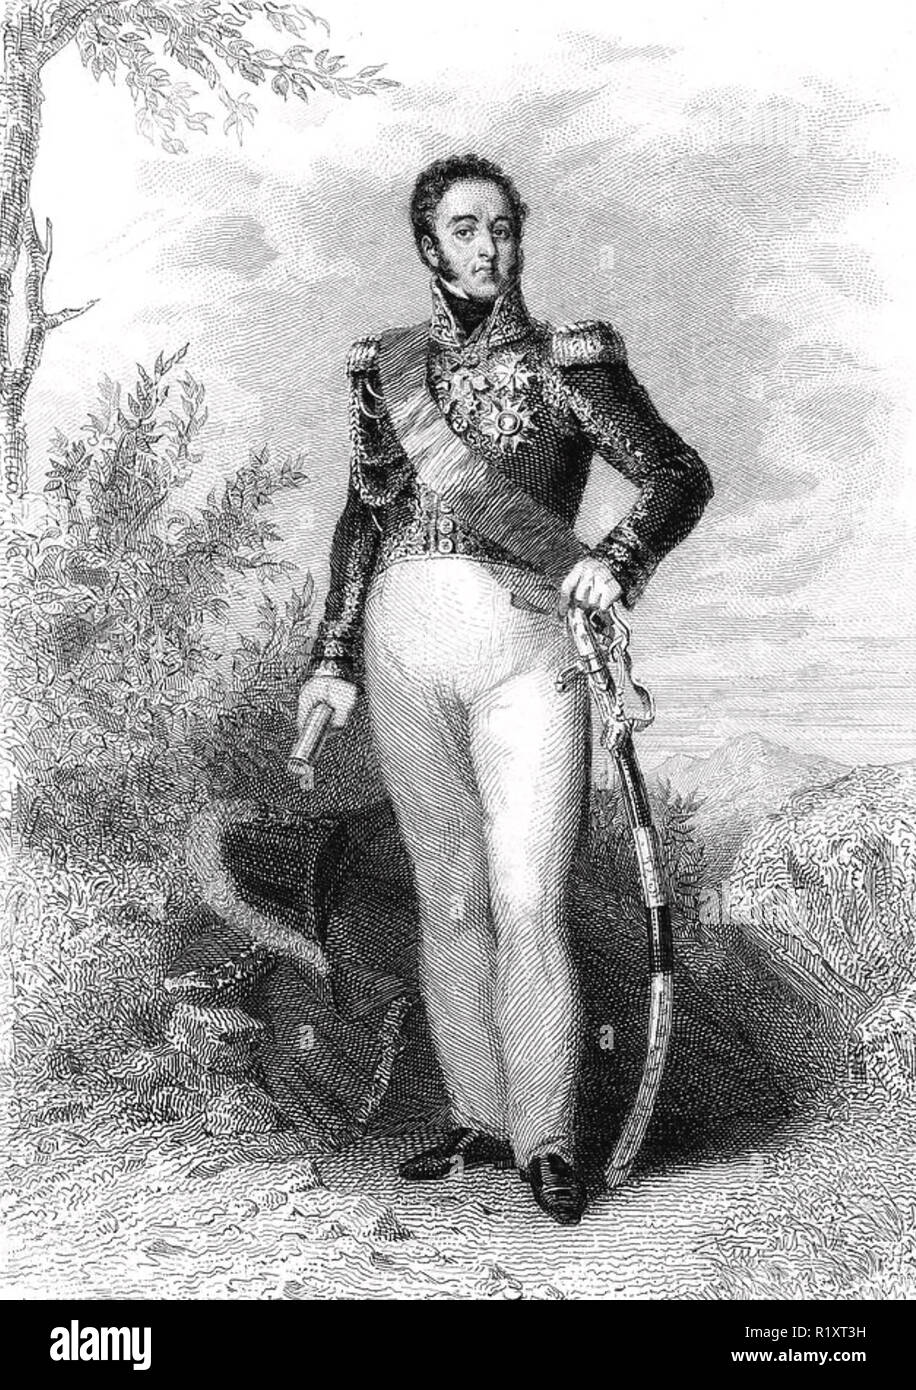 LOUIS-GABRIEL SUCHET (1770-1826) French Marshal - Stock Image